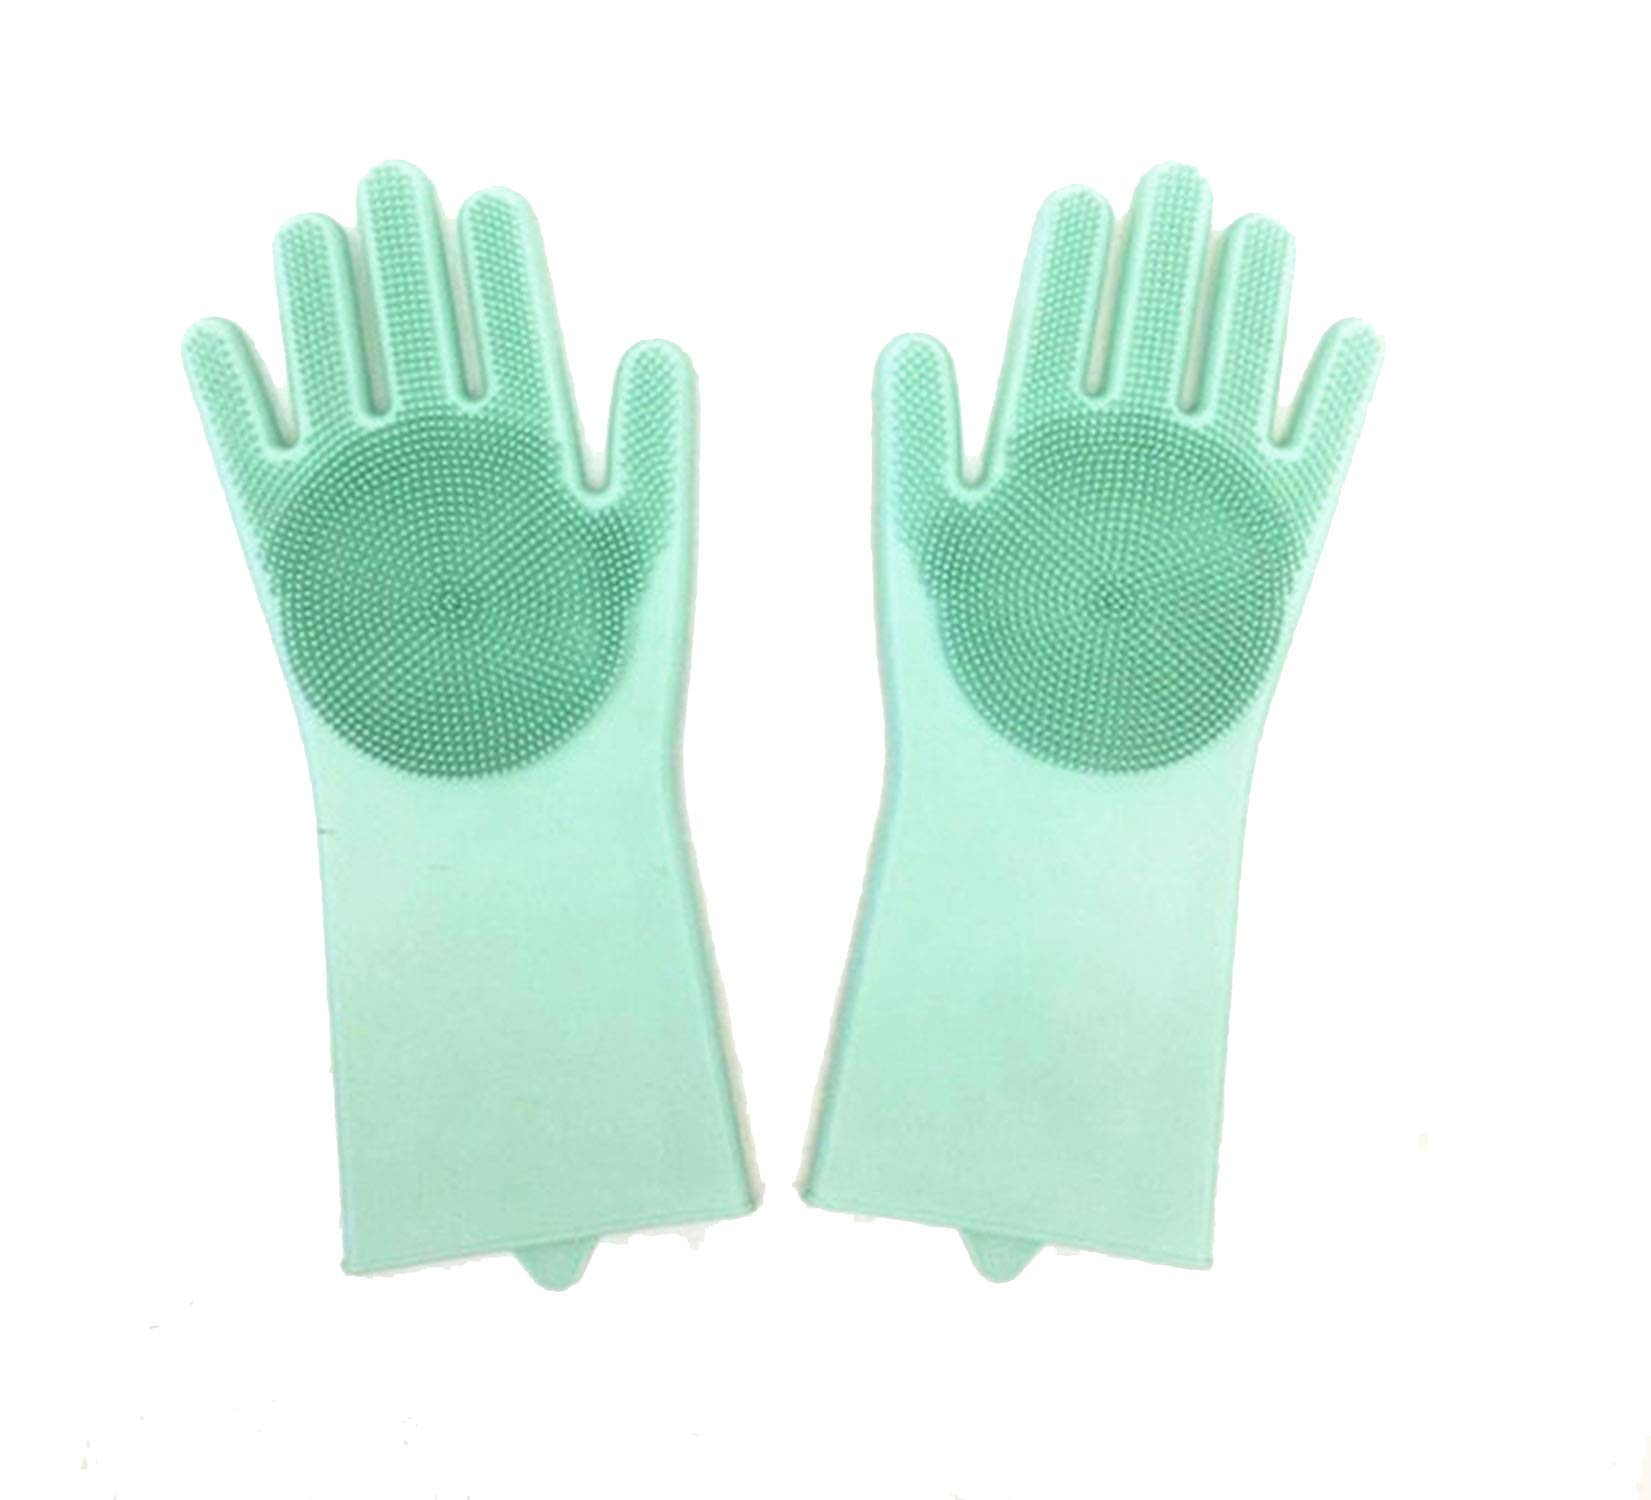 1 Pair Magic Silicone Rubbe Dish Washing Gloves Eco-Friendly Scrubber Cleaning for Multipurpose Kitchen Bed Bathroom Hair Care,Green,21 X 14.5CM